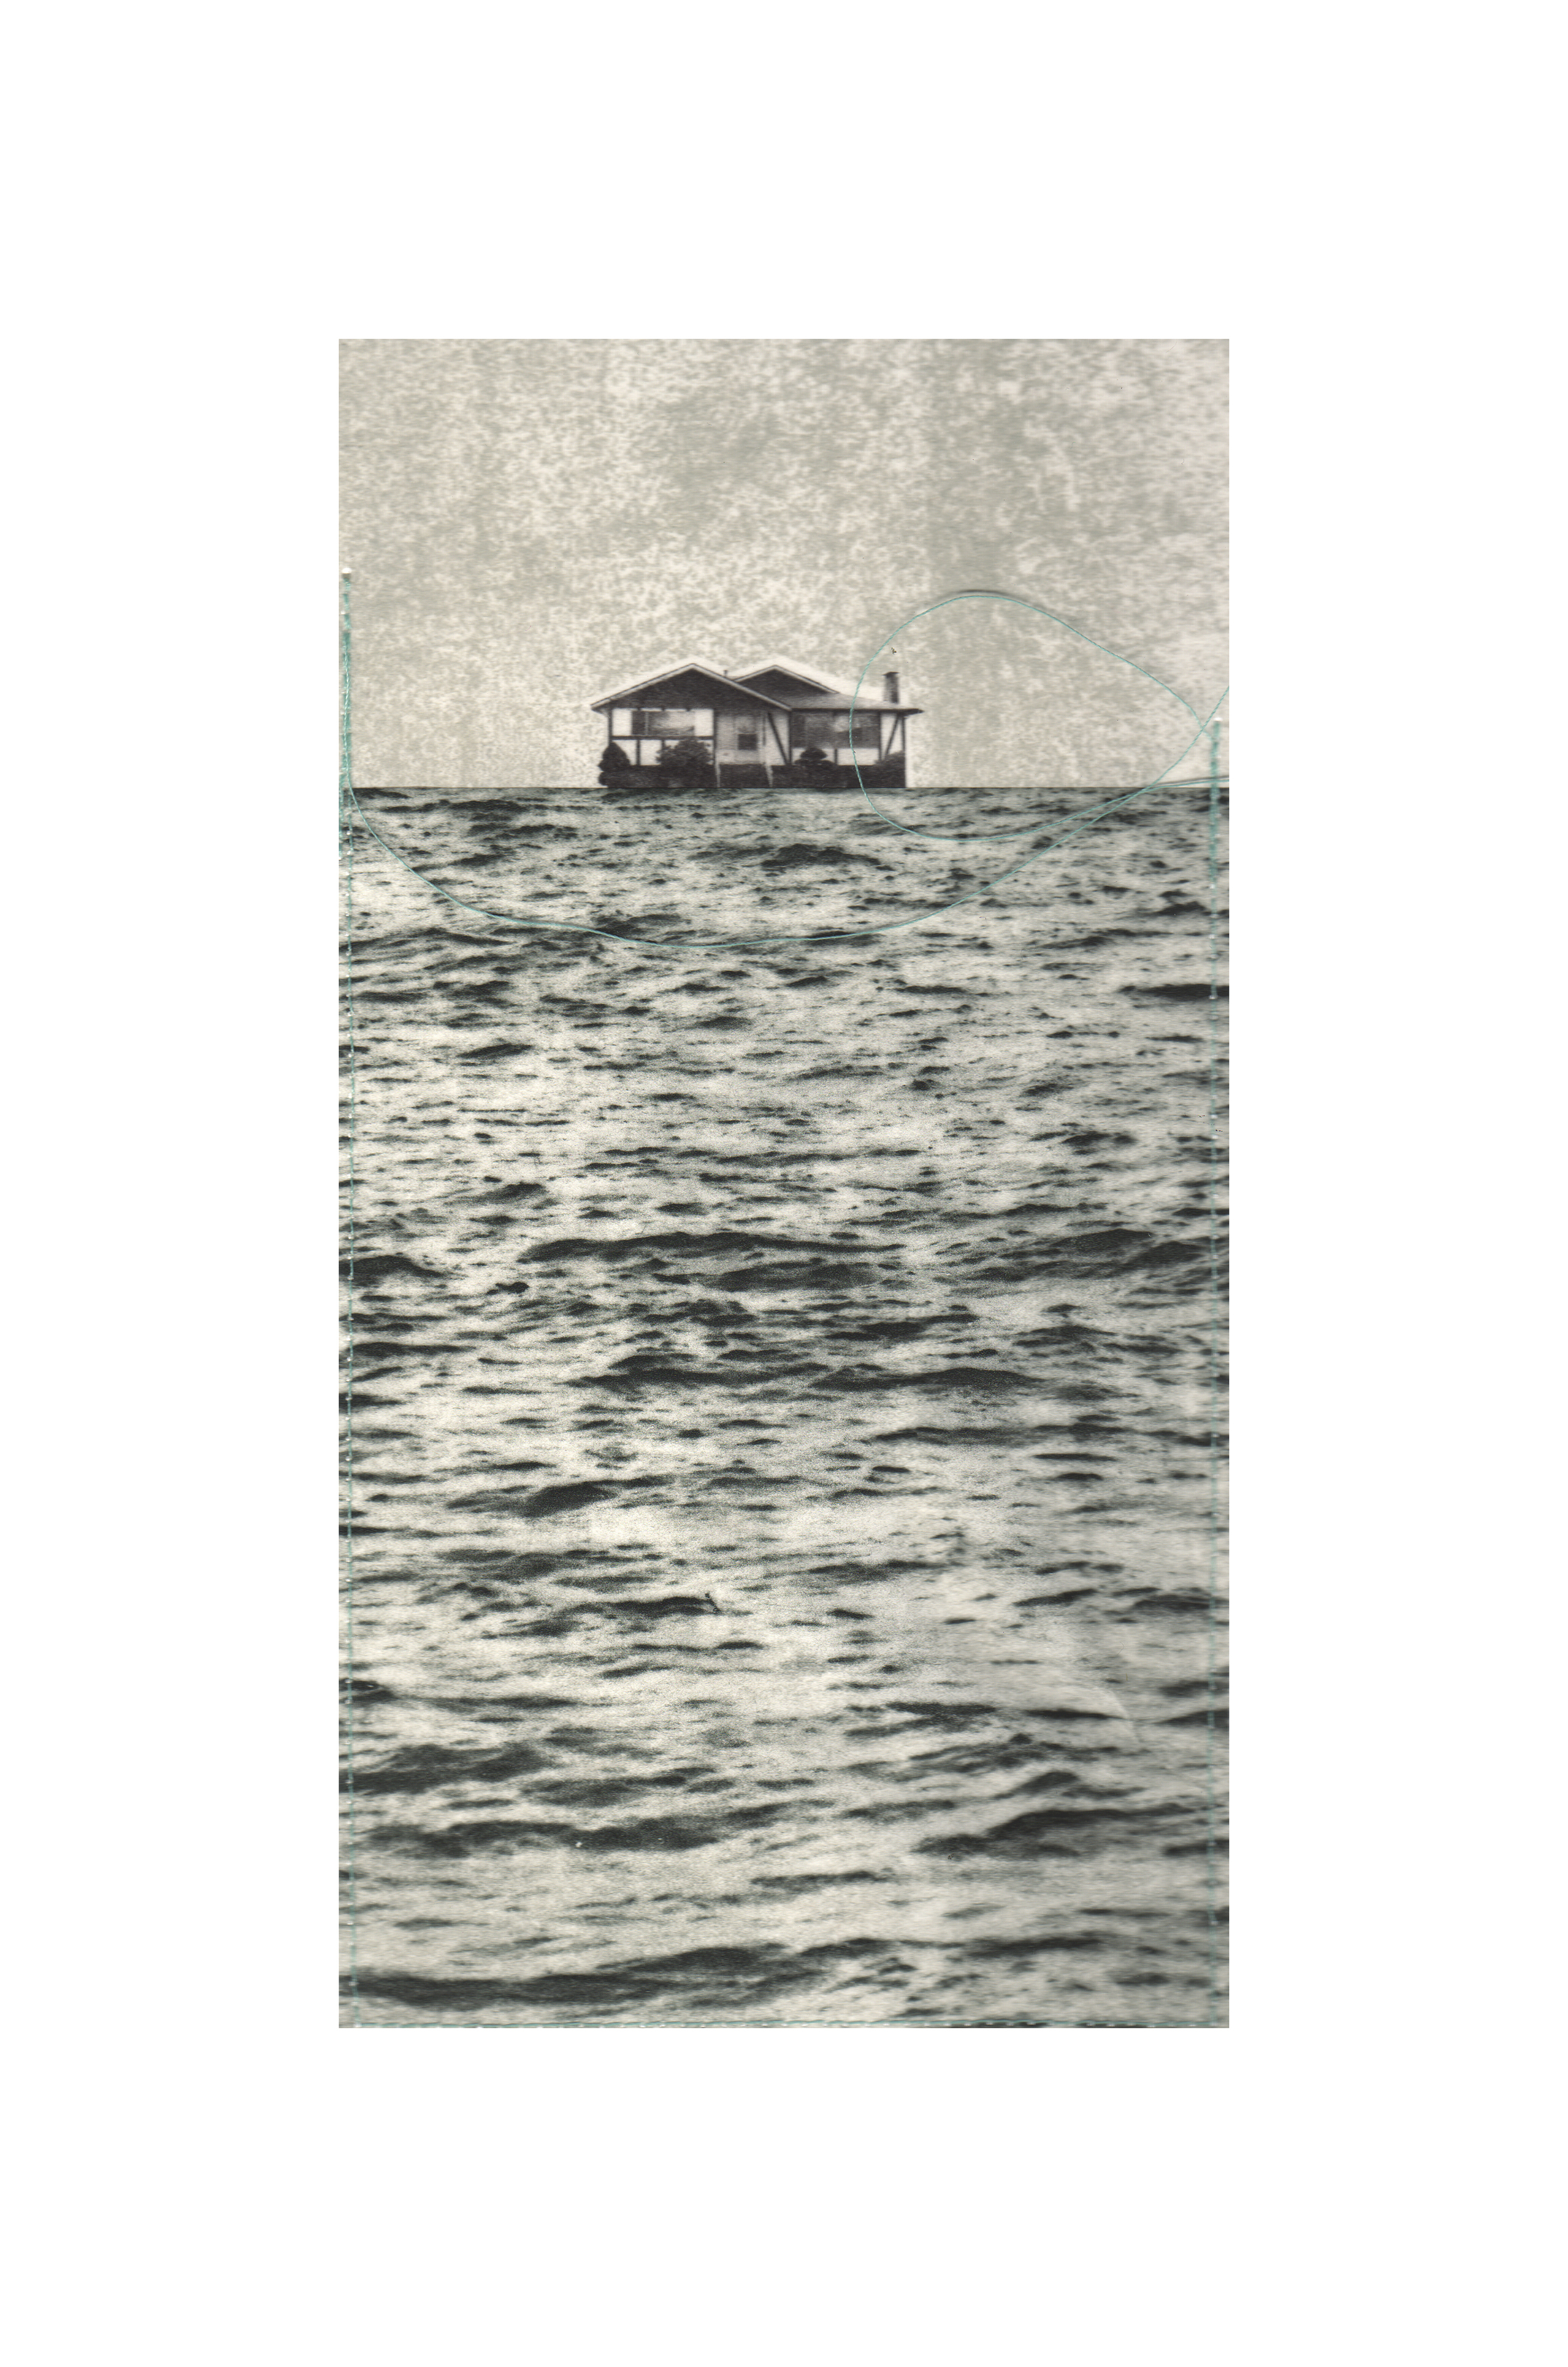 """Tidal Blankets - Northeasternly Winds   Etching, chine colle, thread  15"""" x 11"""", 2010"""